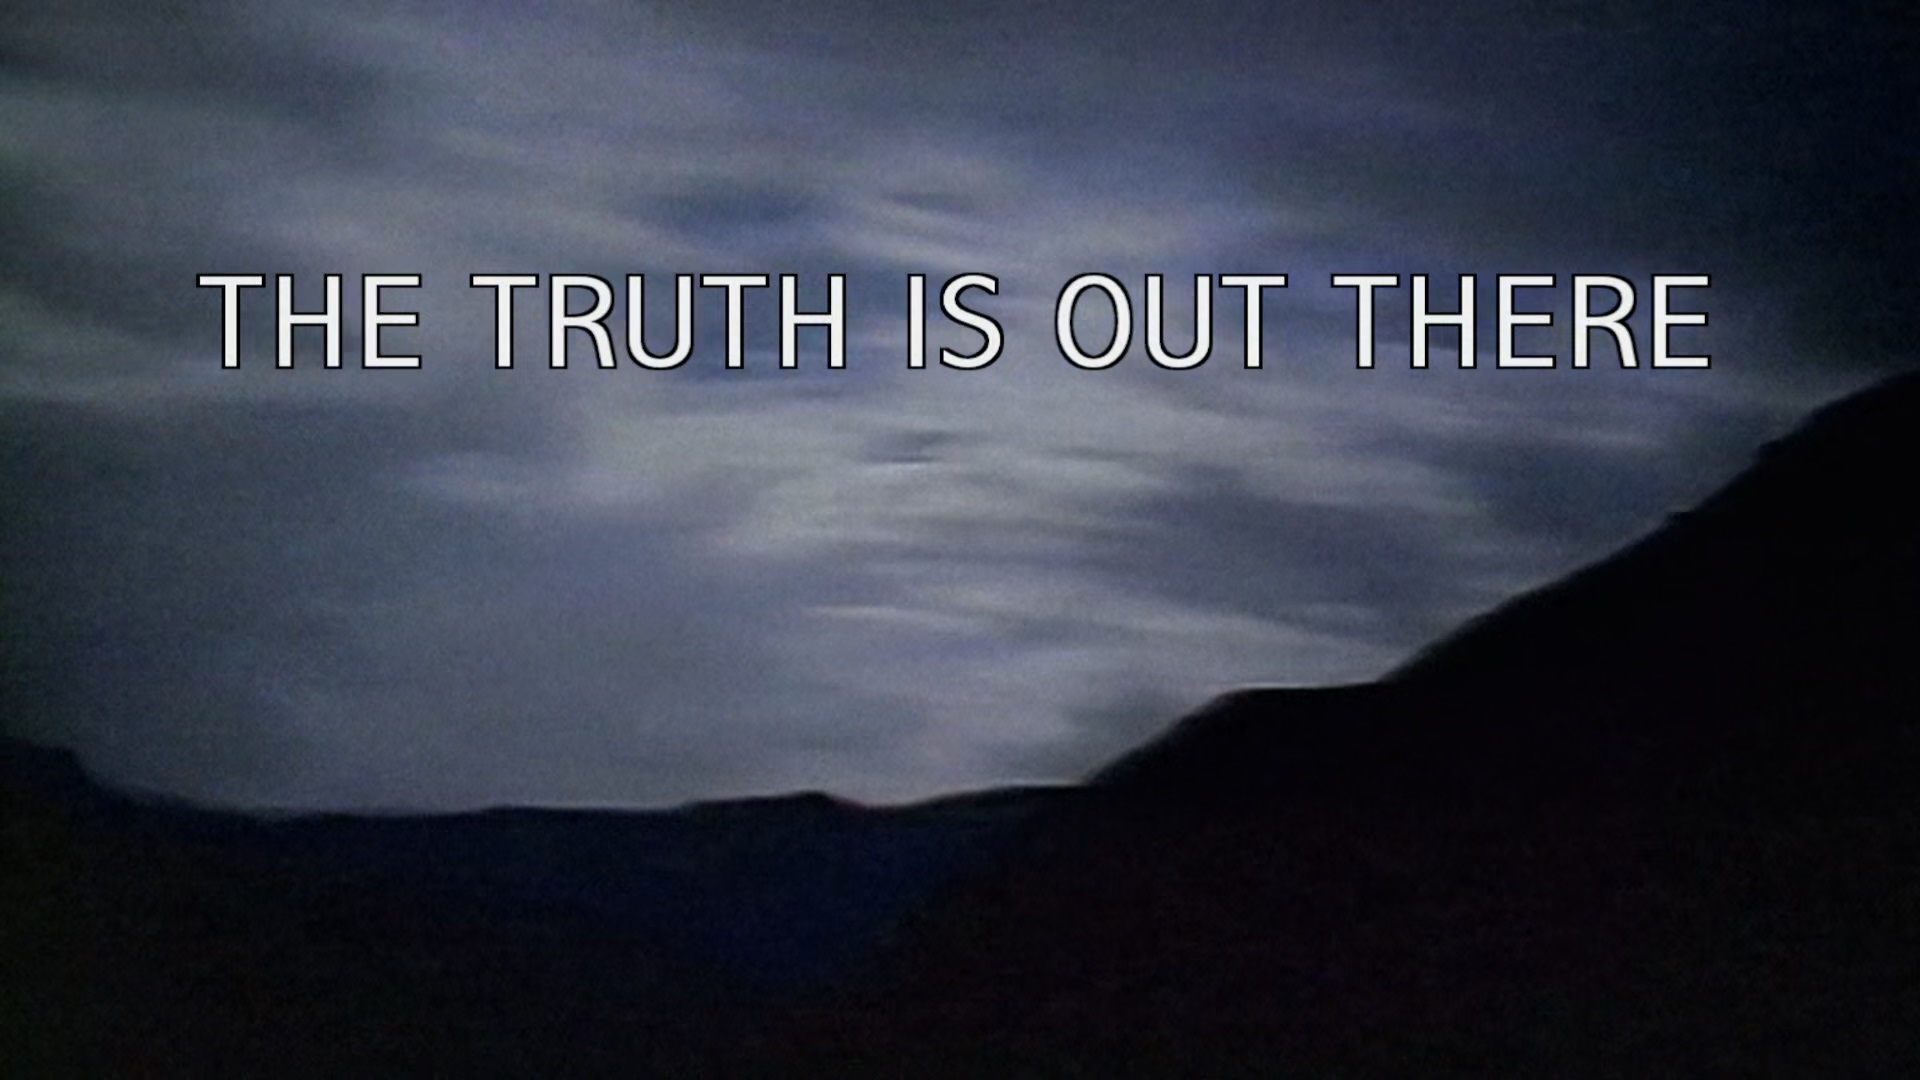 X Files The Truth Is Out There Poster 9/11, Bishop Williamso...